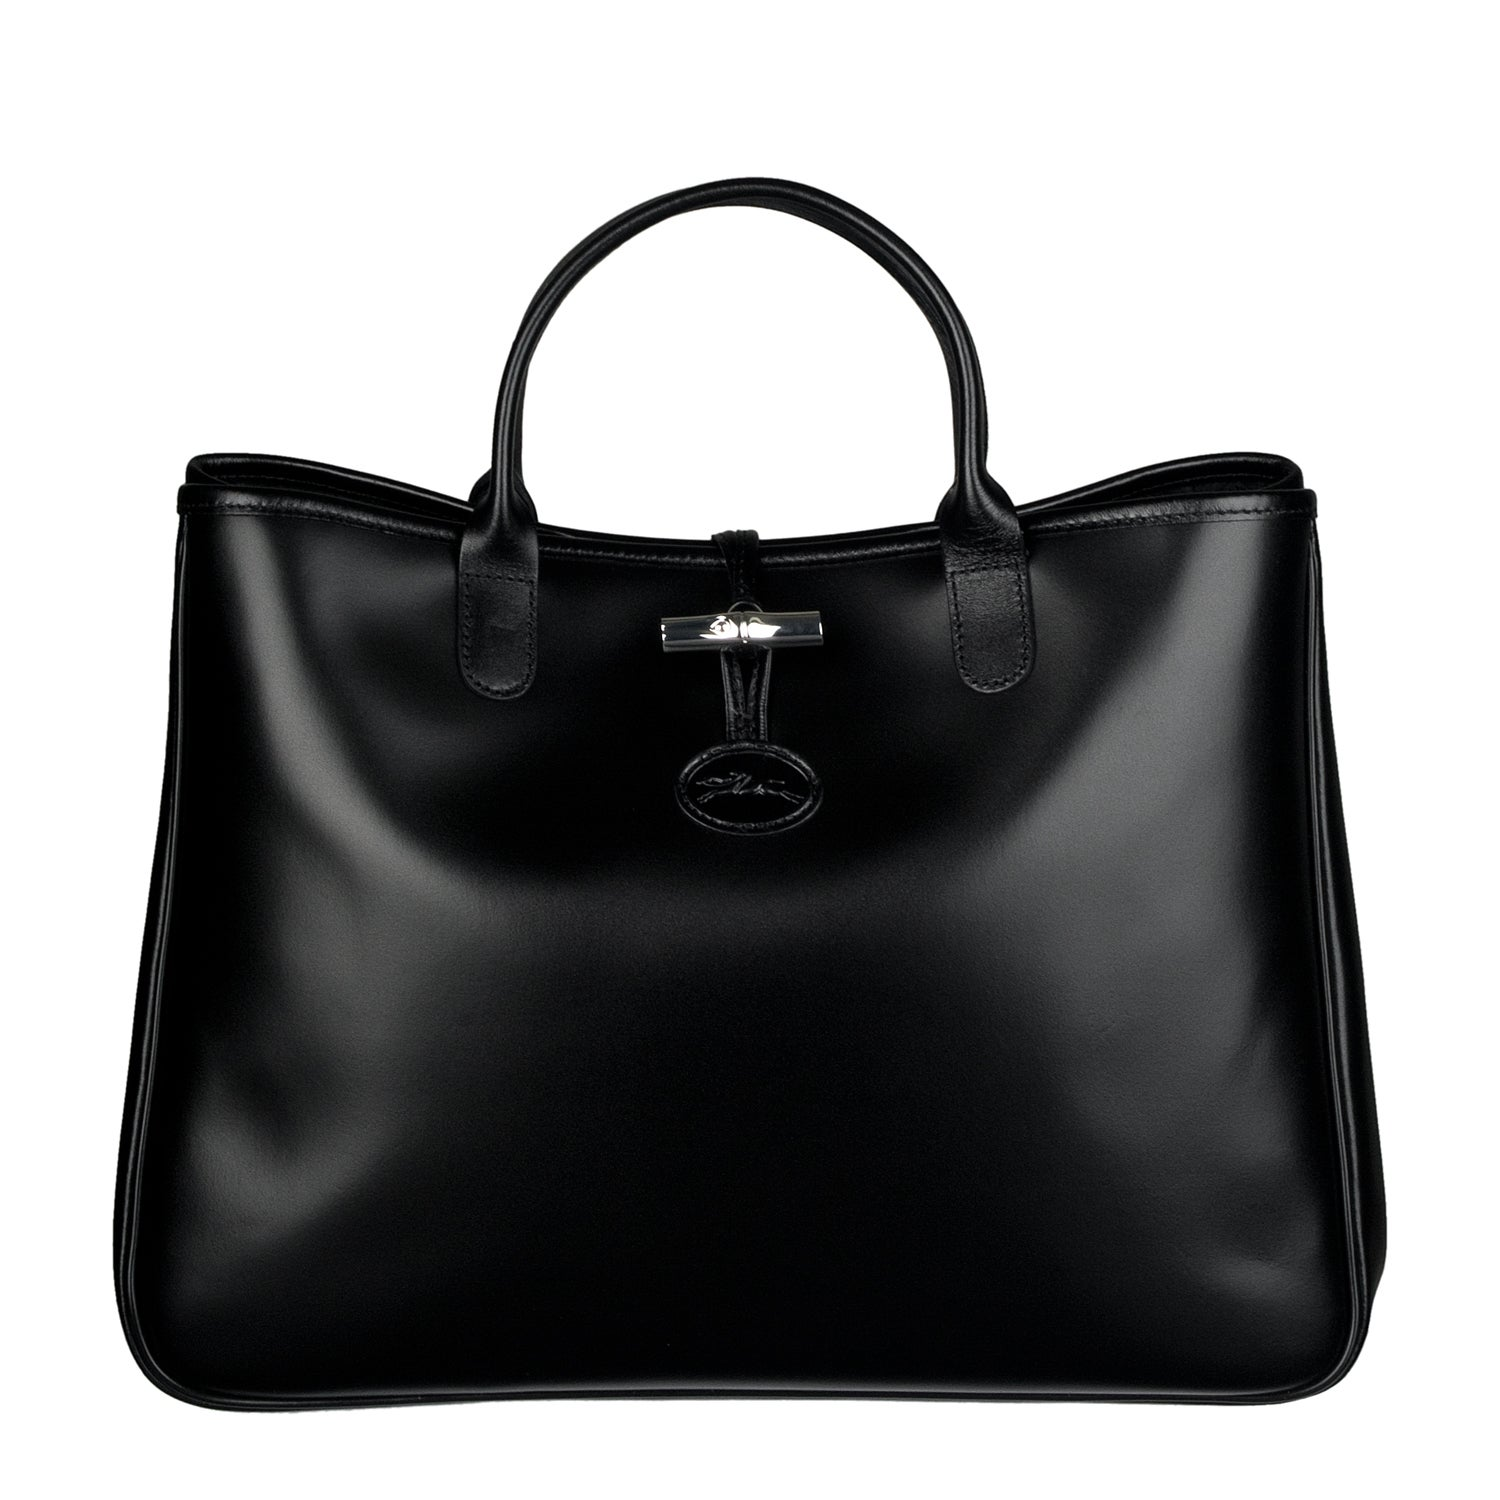 388a18640da Shop Longchamp 'Roseau East West' Leather Tote Bag - Free Shipping Today -  Overstock - 6417627